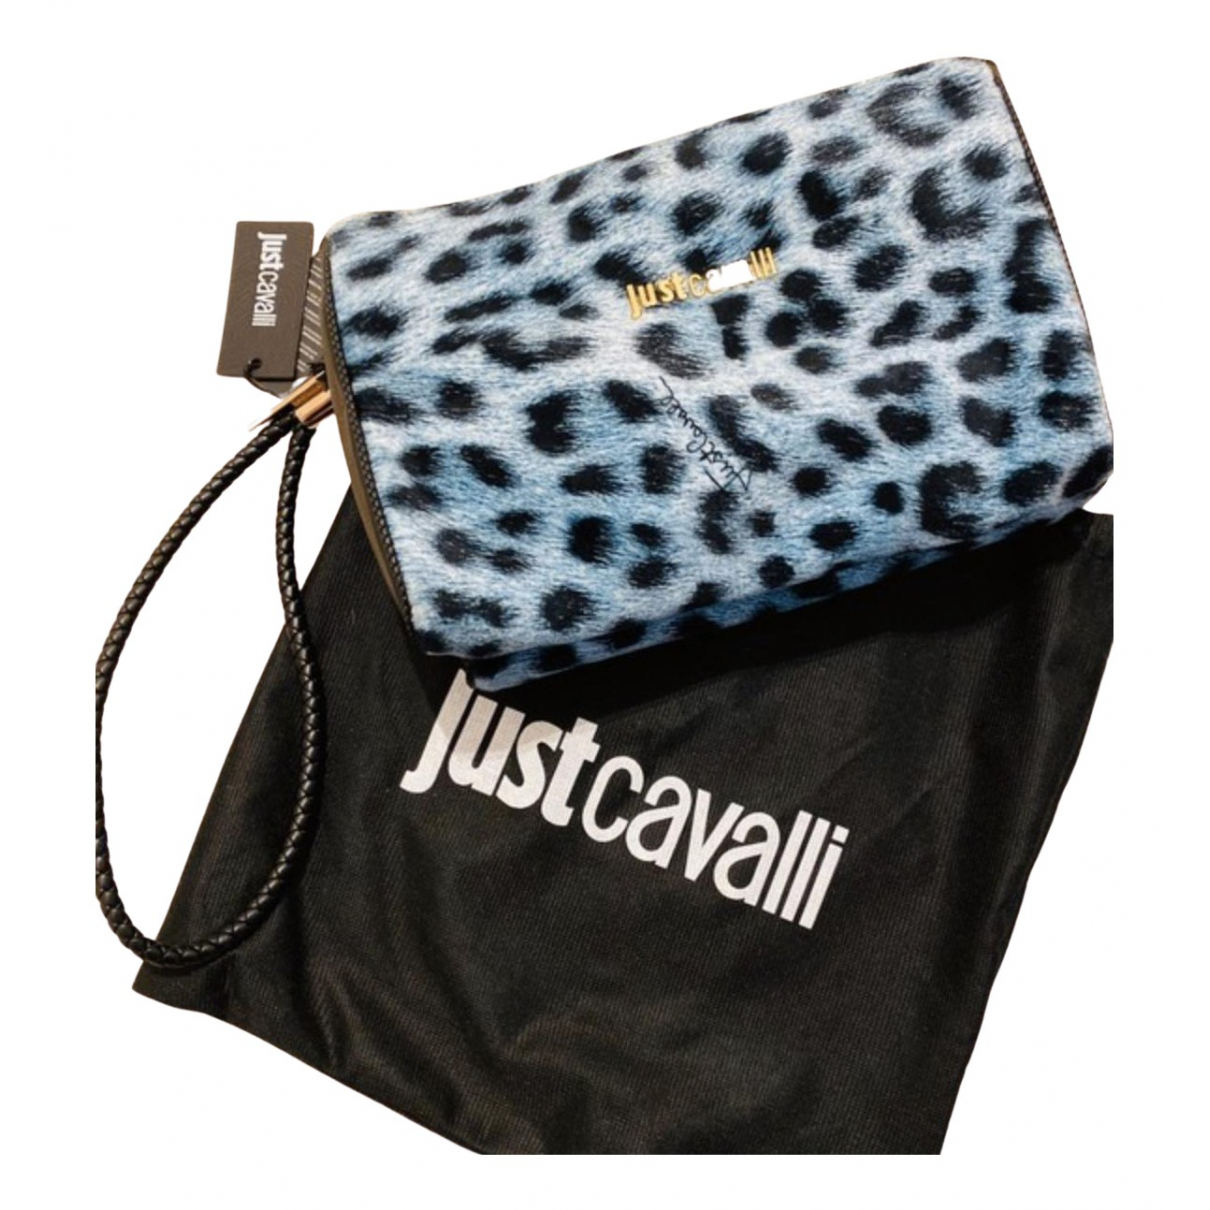 Just Cavalli \N Multicolour Leather Clutch bag for Women \N